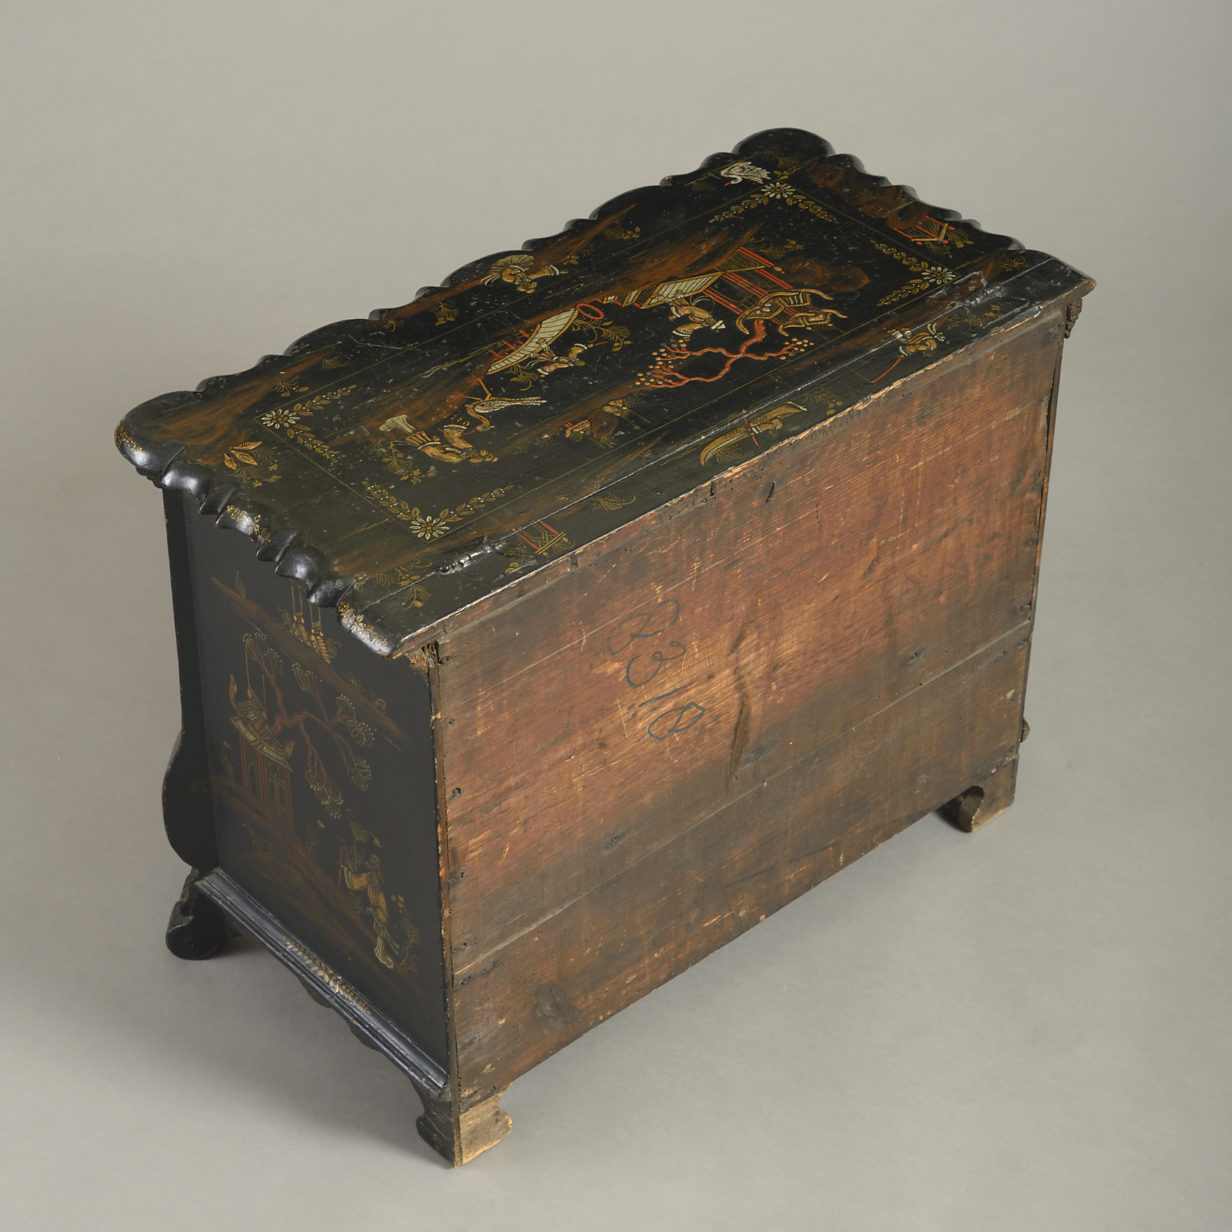 Dutch Japanned Work Box